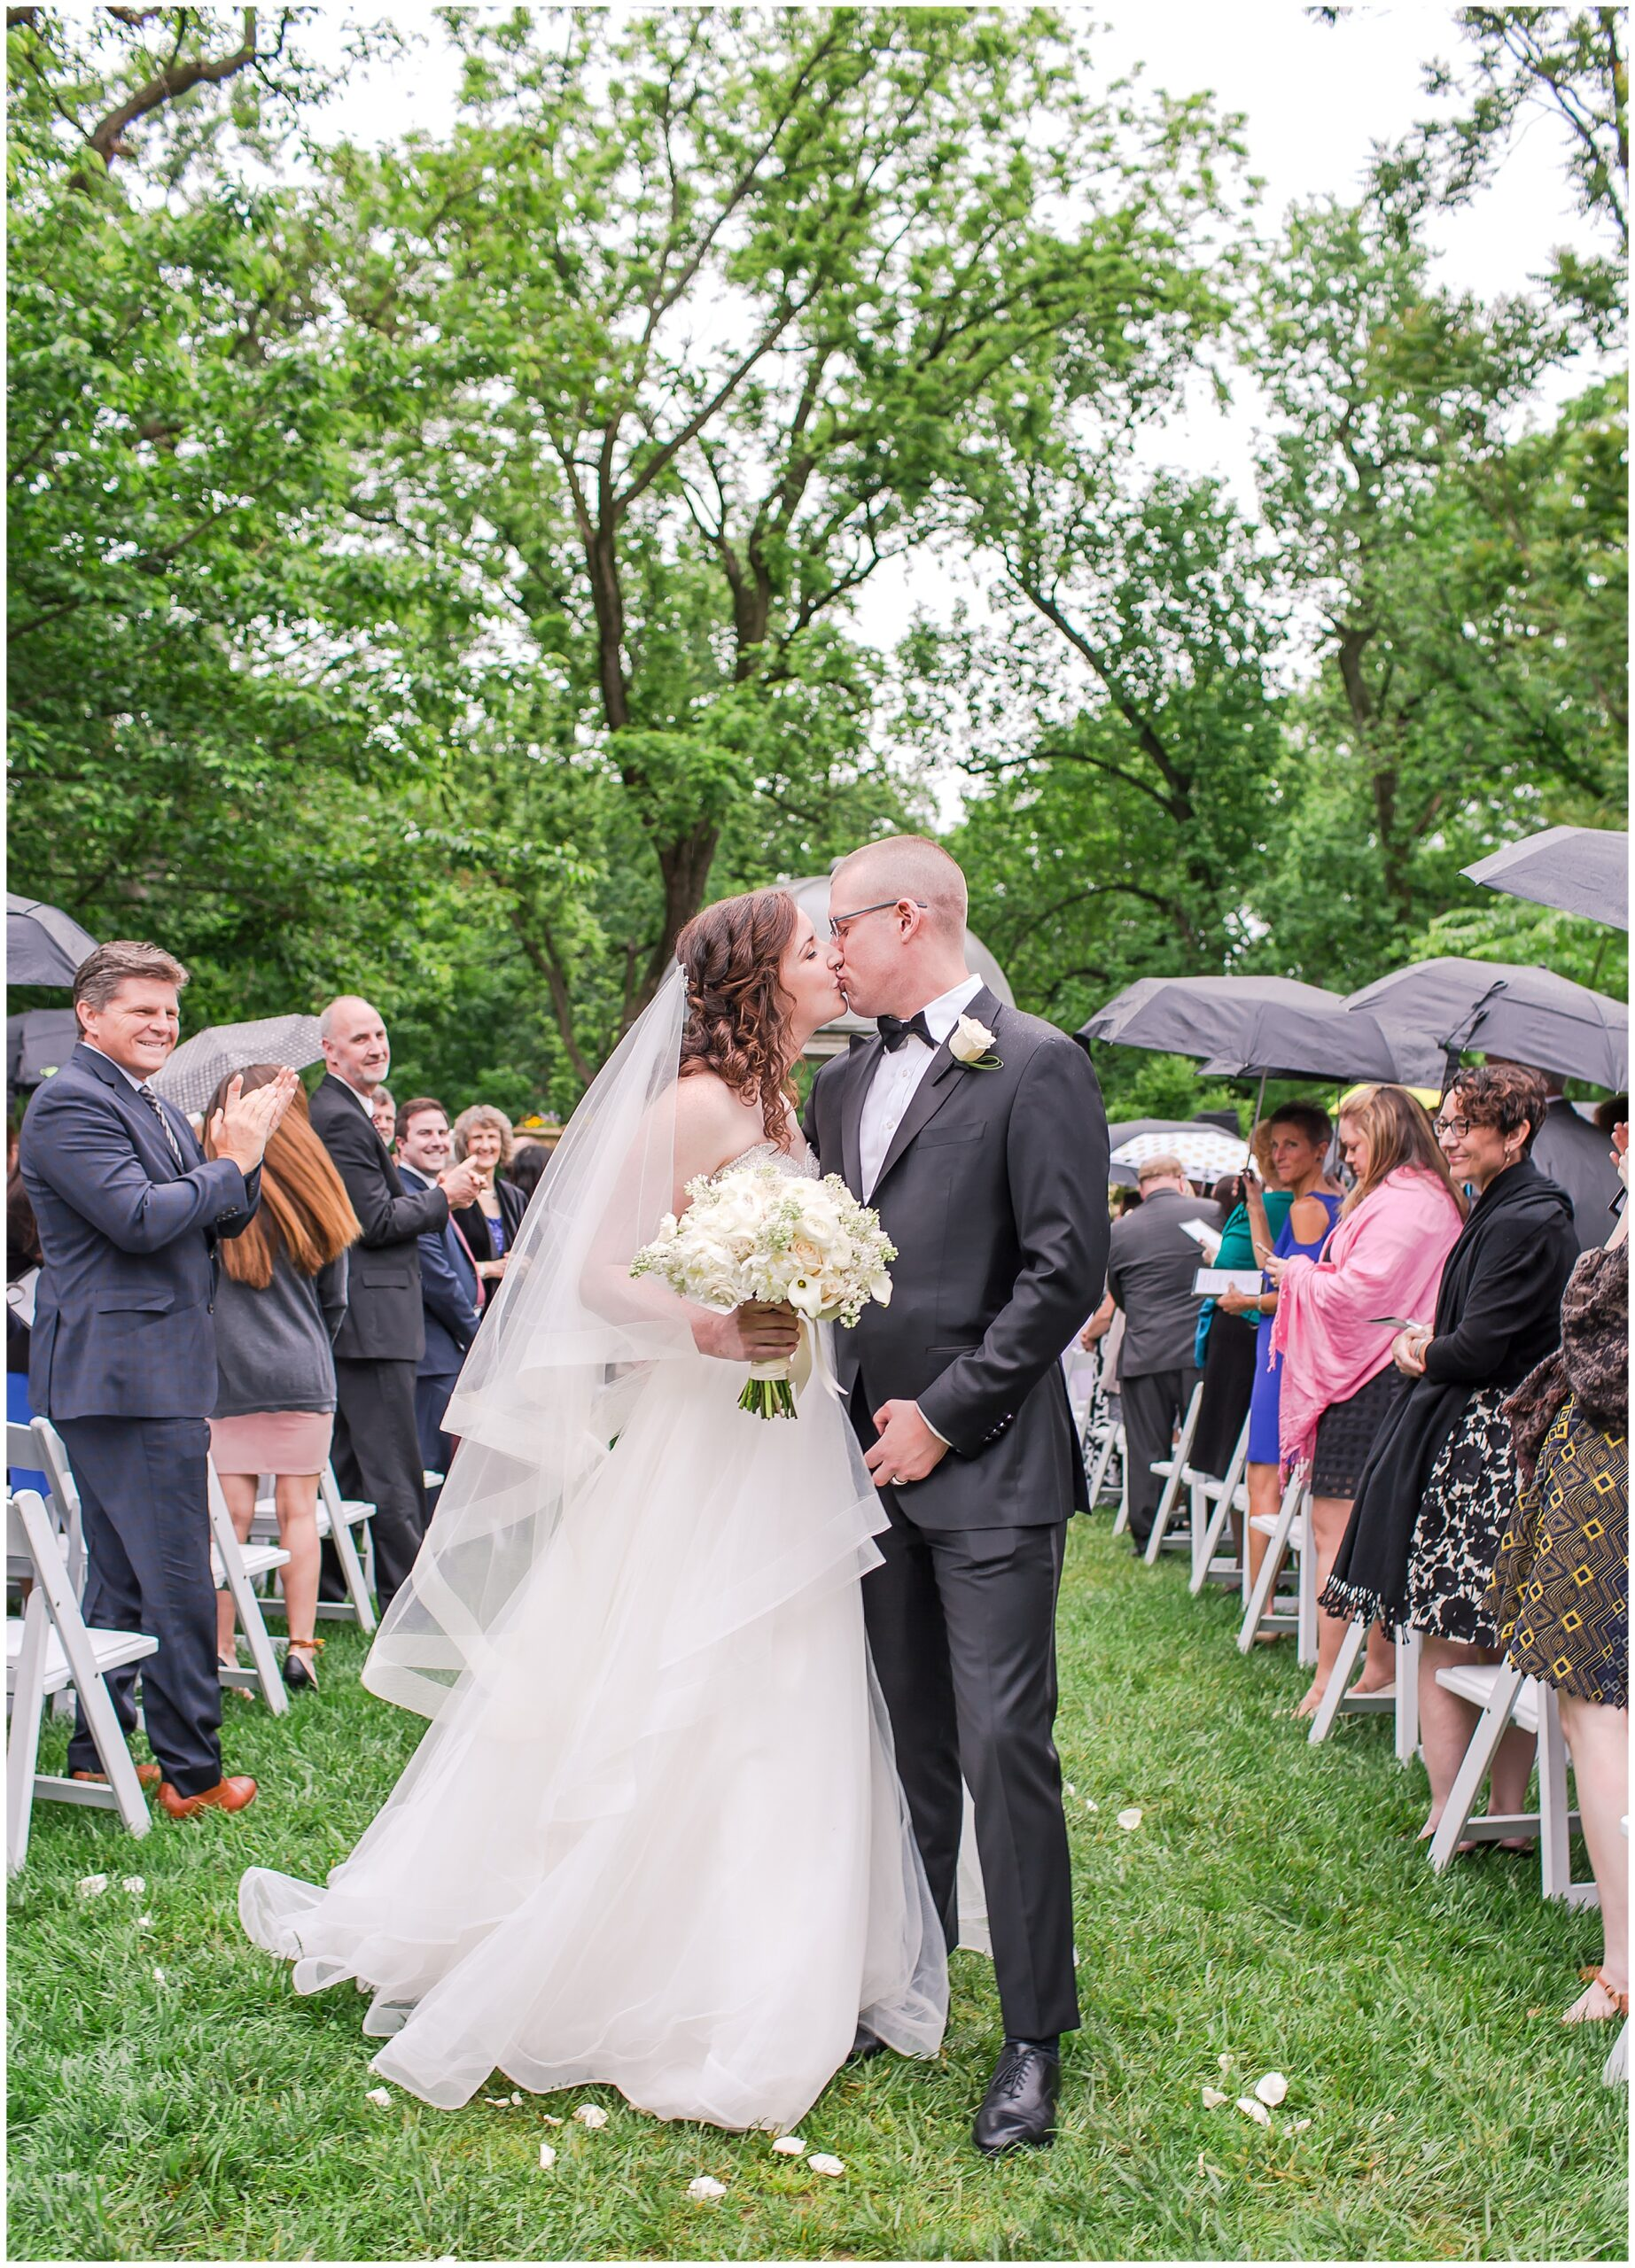 Springtime Omni Shoreham Wedding rain-wedding-outside-just-married-kiss